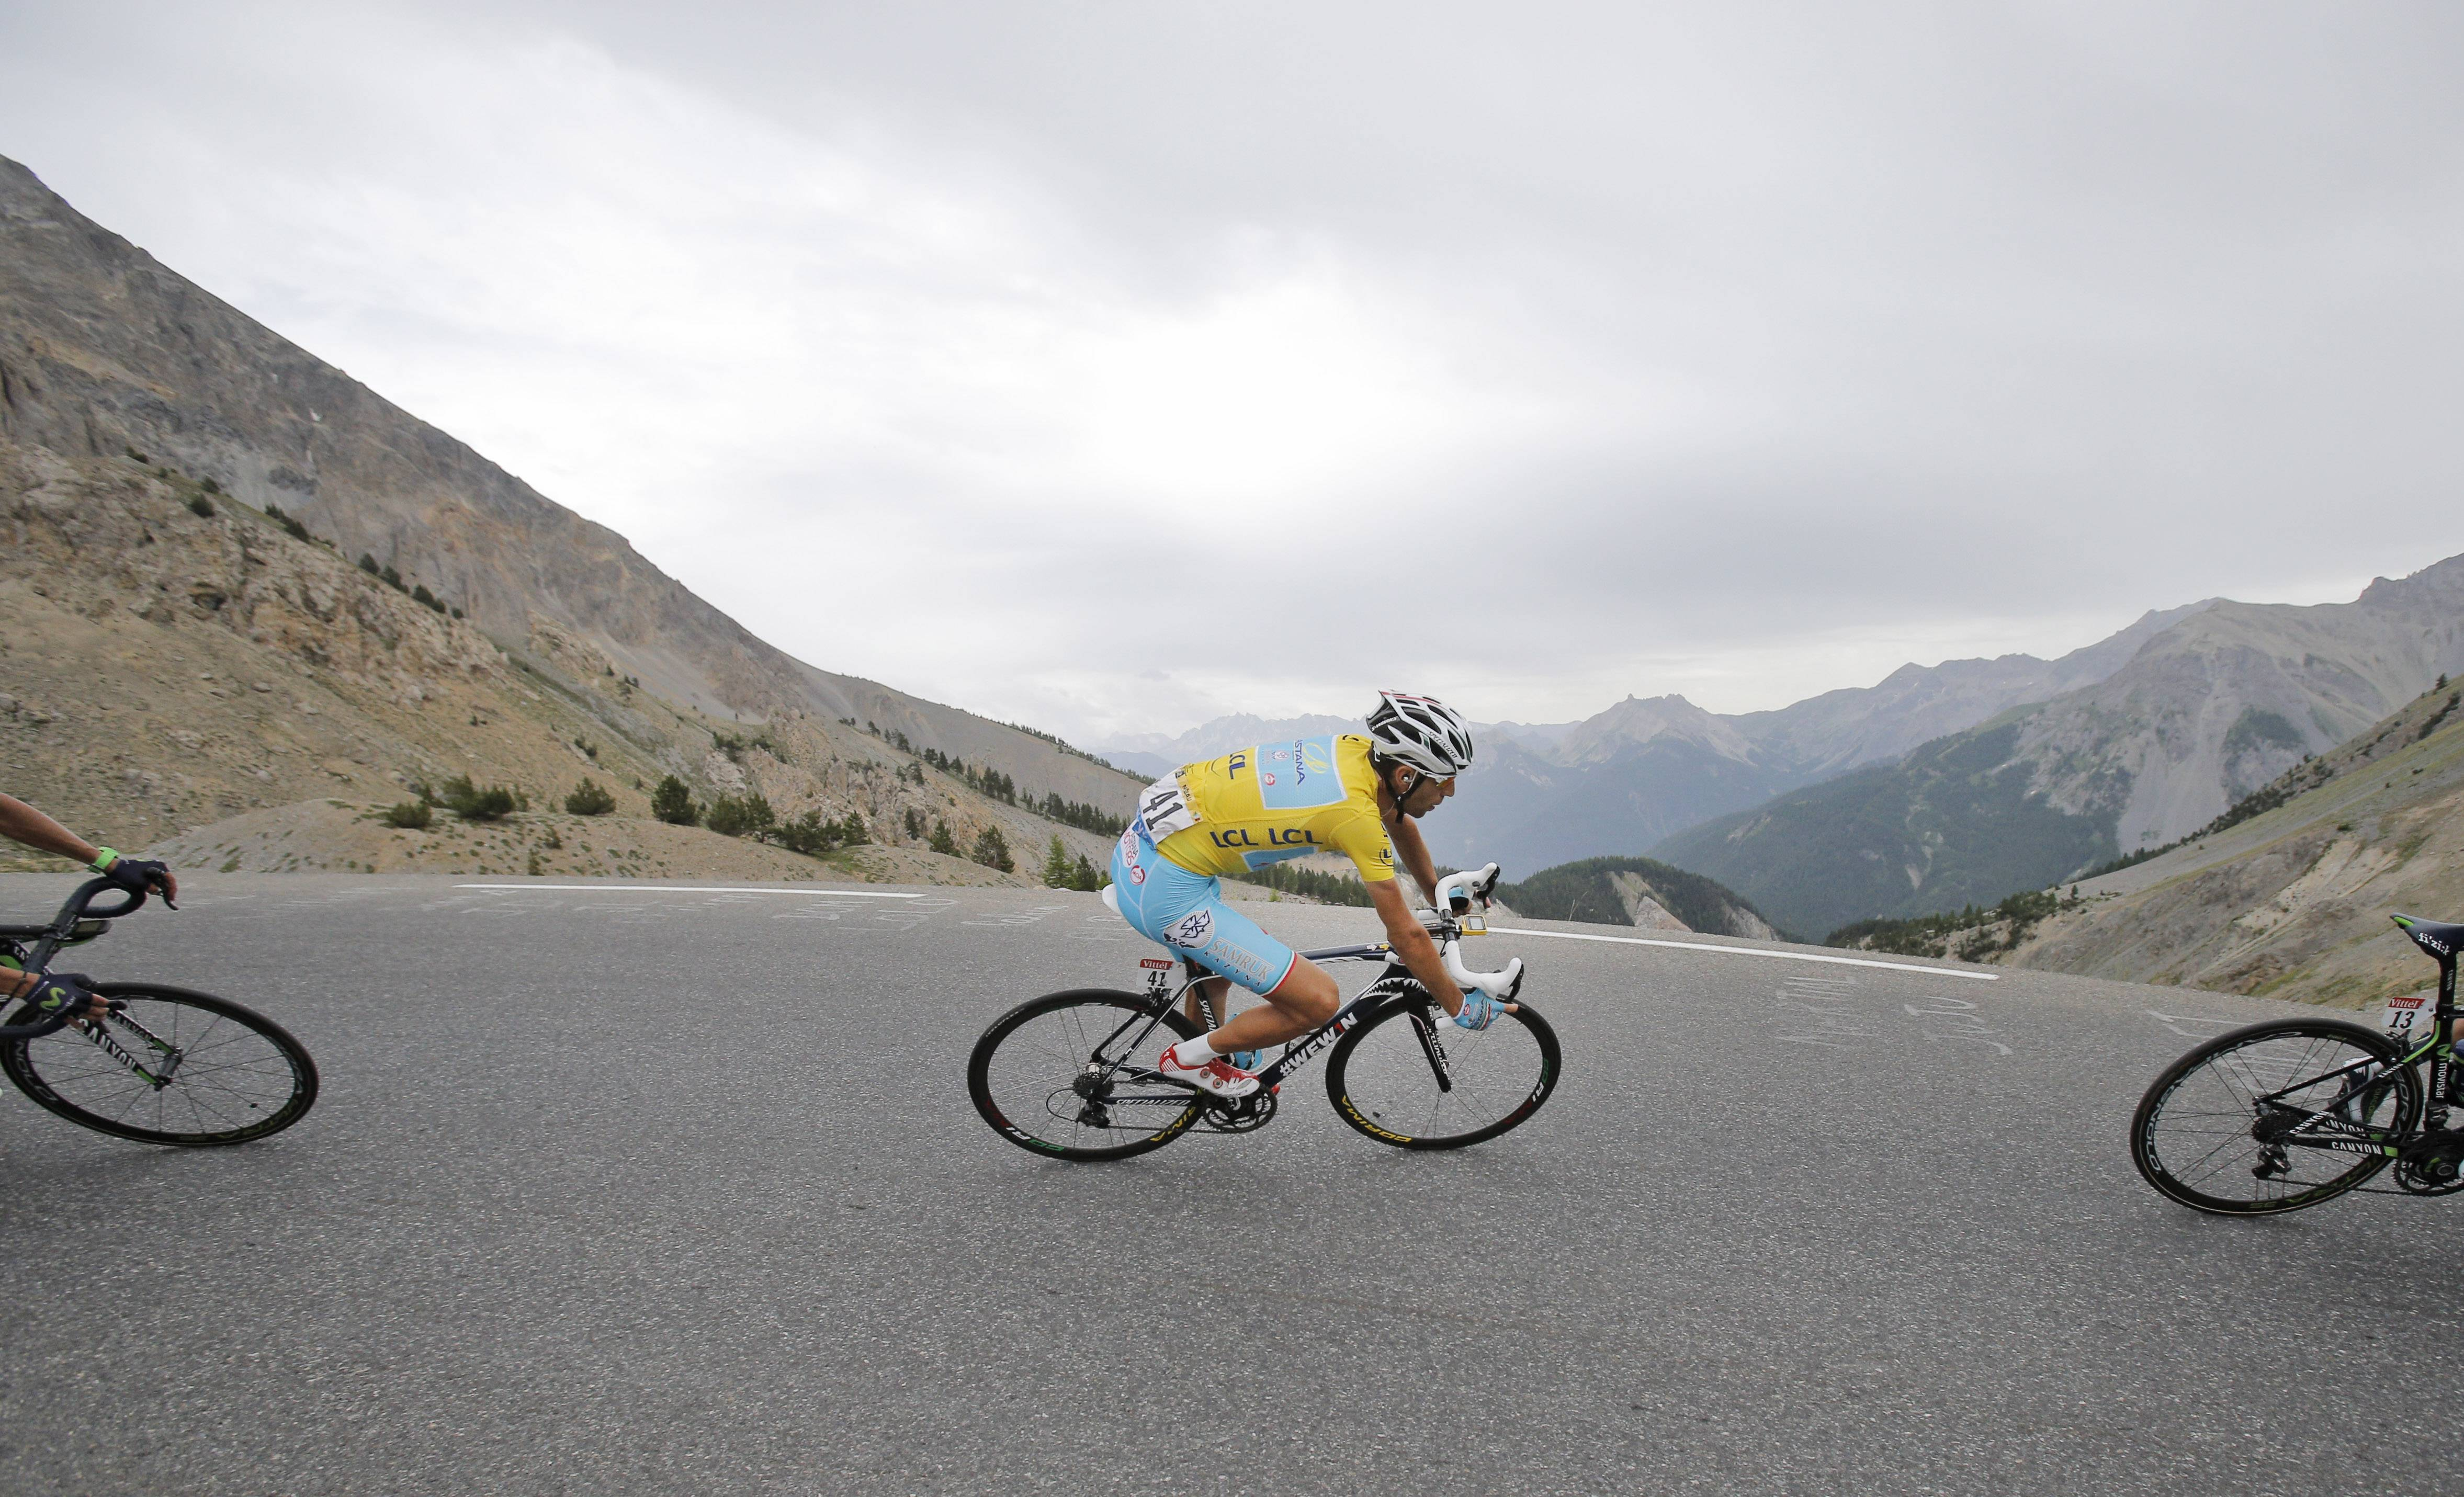 Italy's Vincenzo Nibali, wearing the overall leader's yellow jersey, speeds down Izoard pass during the 14th stage of the Tour de France on Saturday.